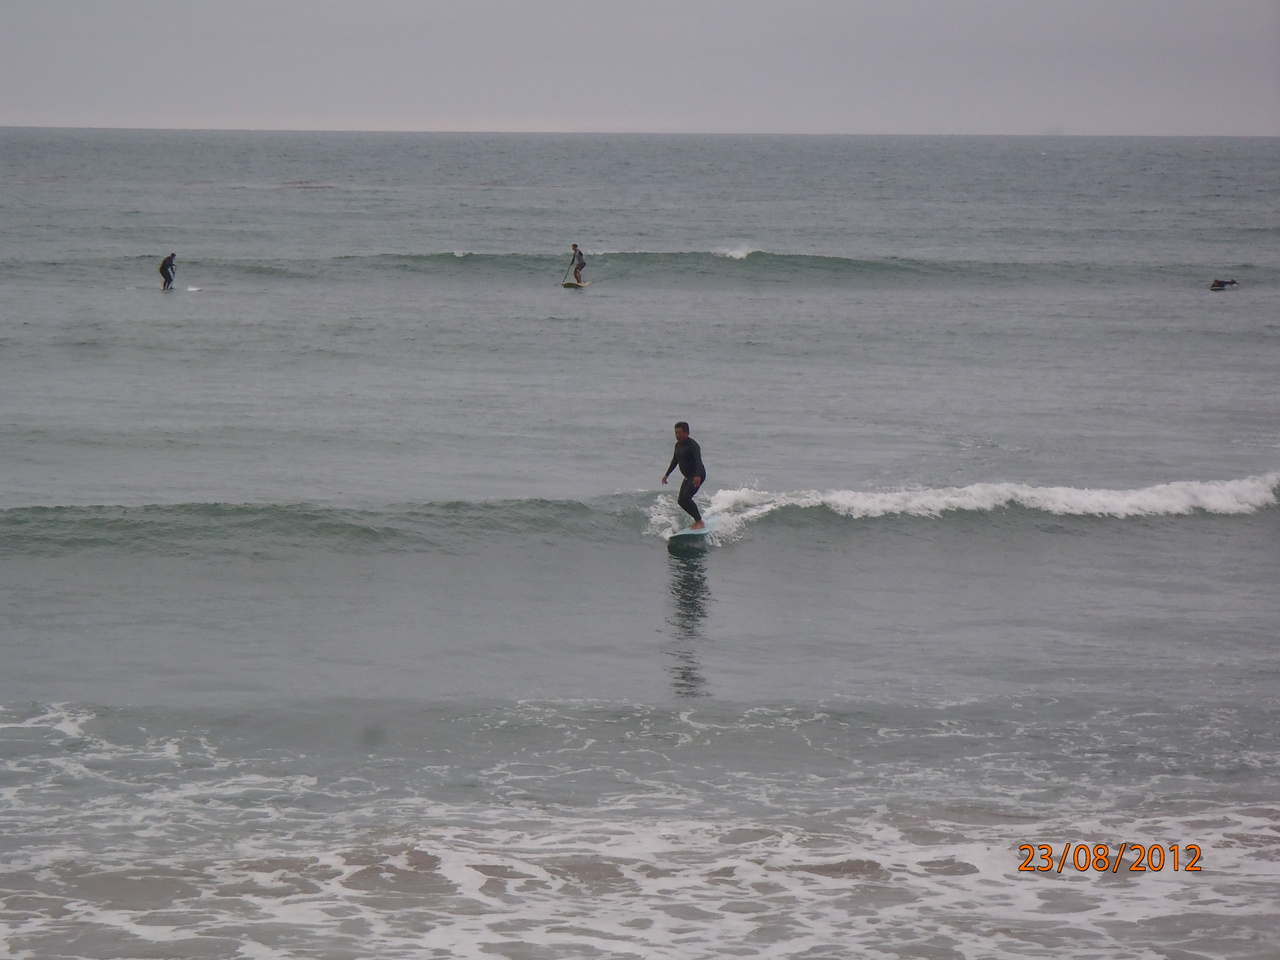 Spent all day Thursday surfing! thought I was going to get skunked in Jalama, but found gold just north of Ventura!